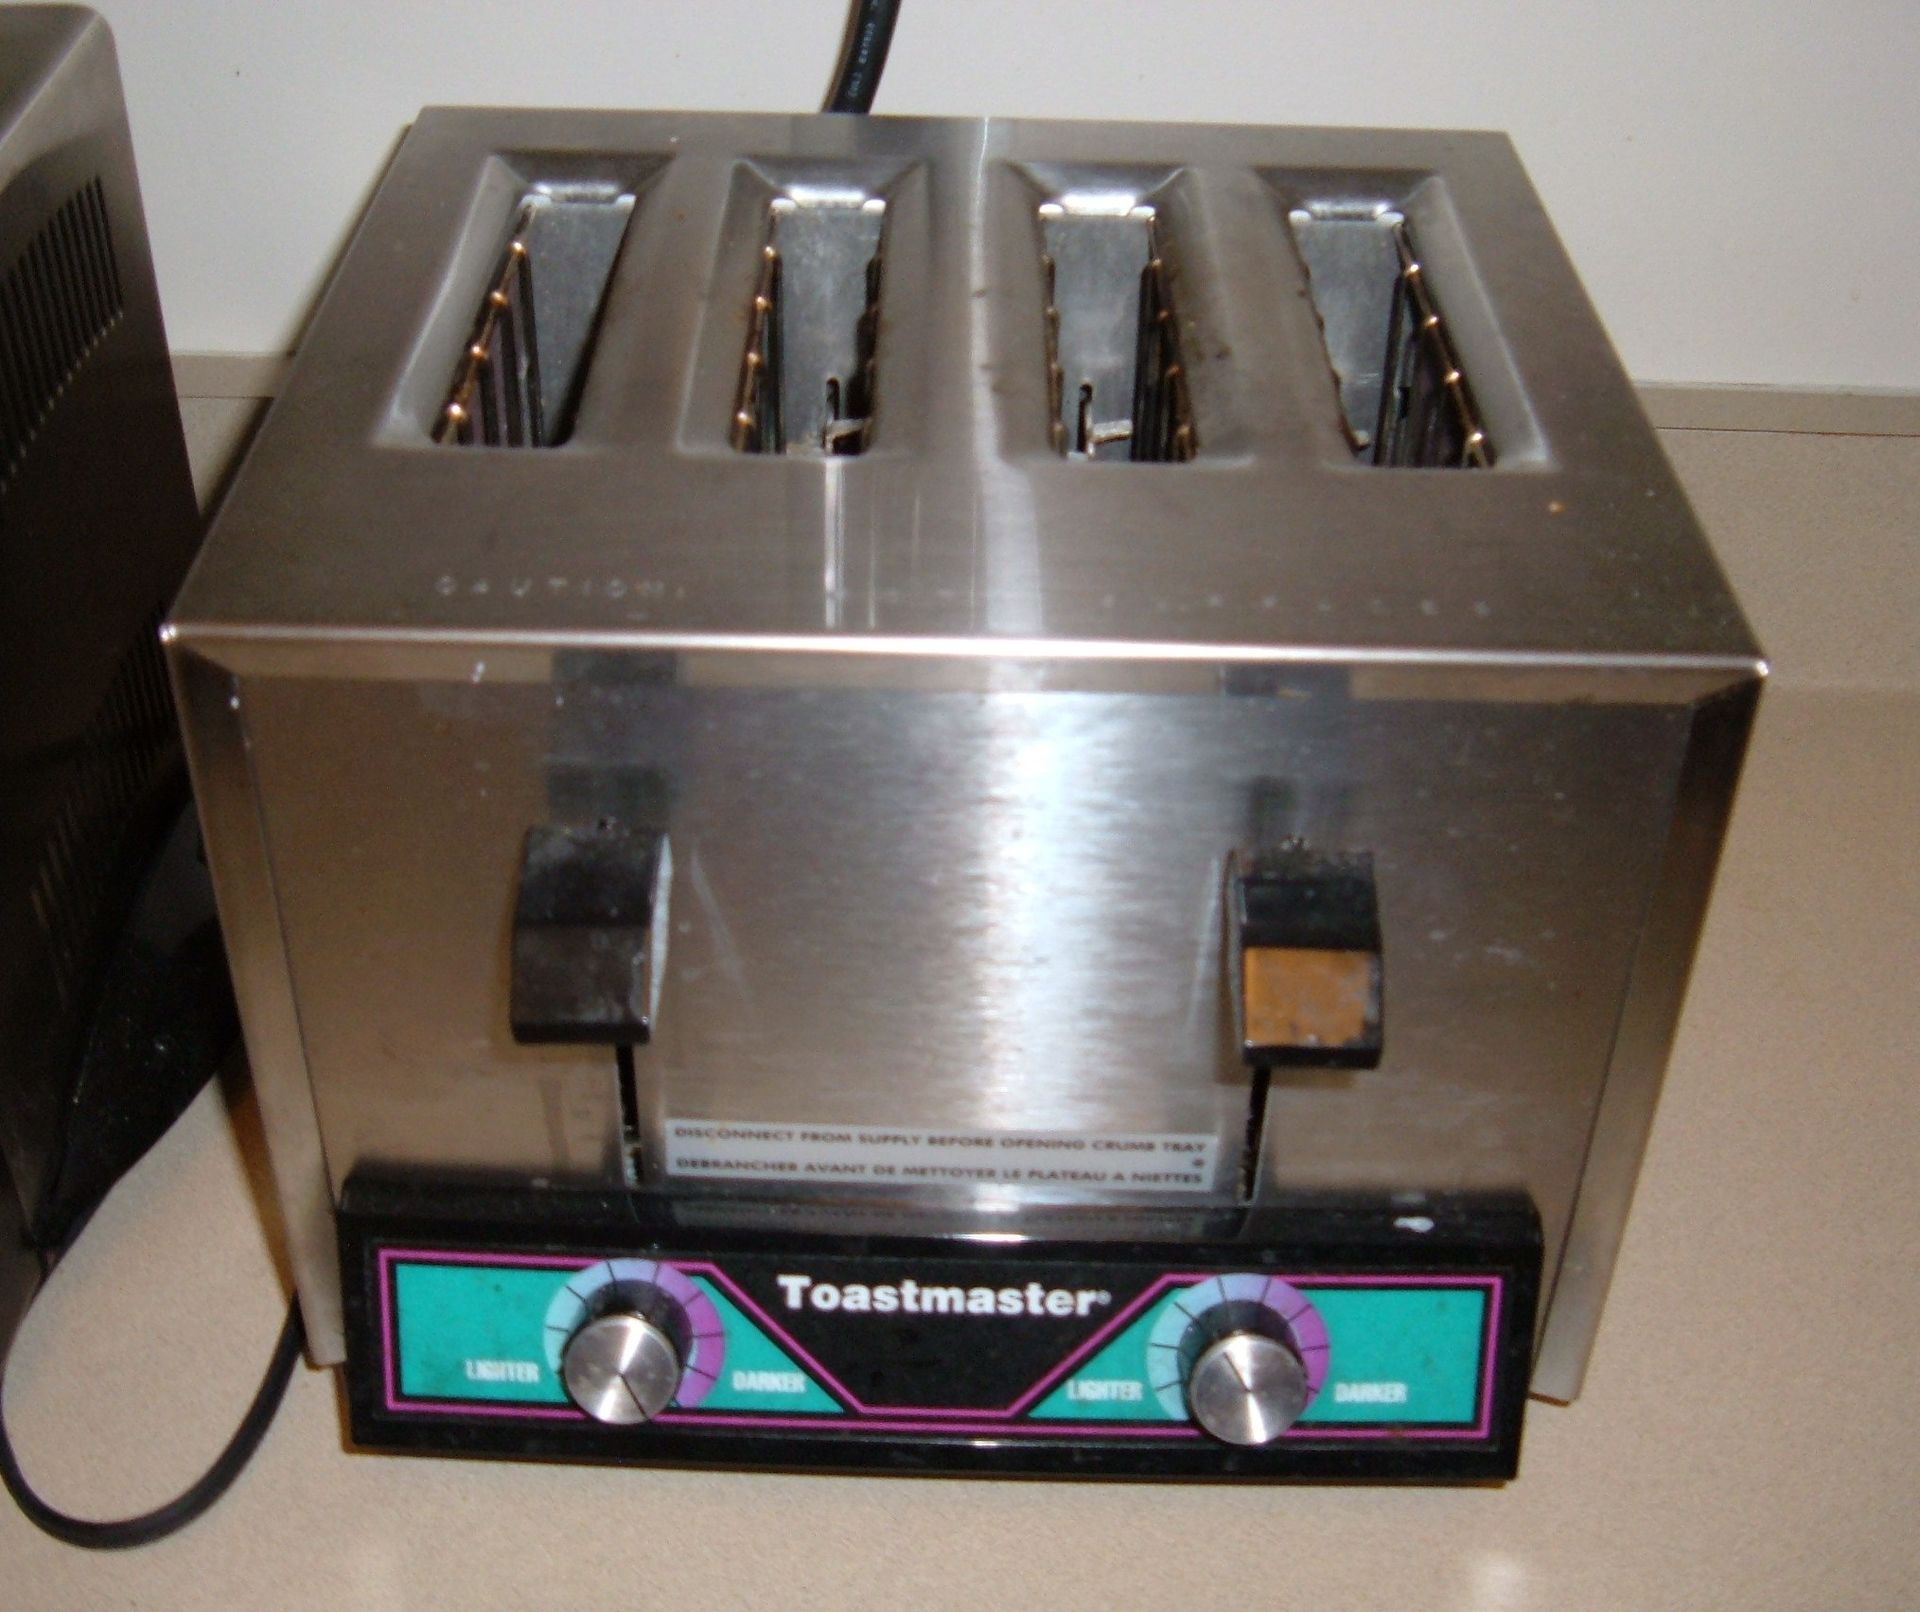 Toastmaster (appliances) - Wikipedia